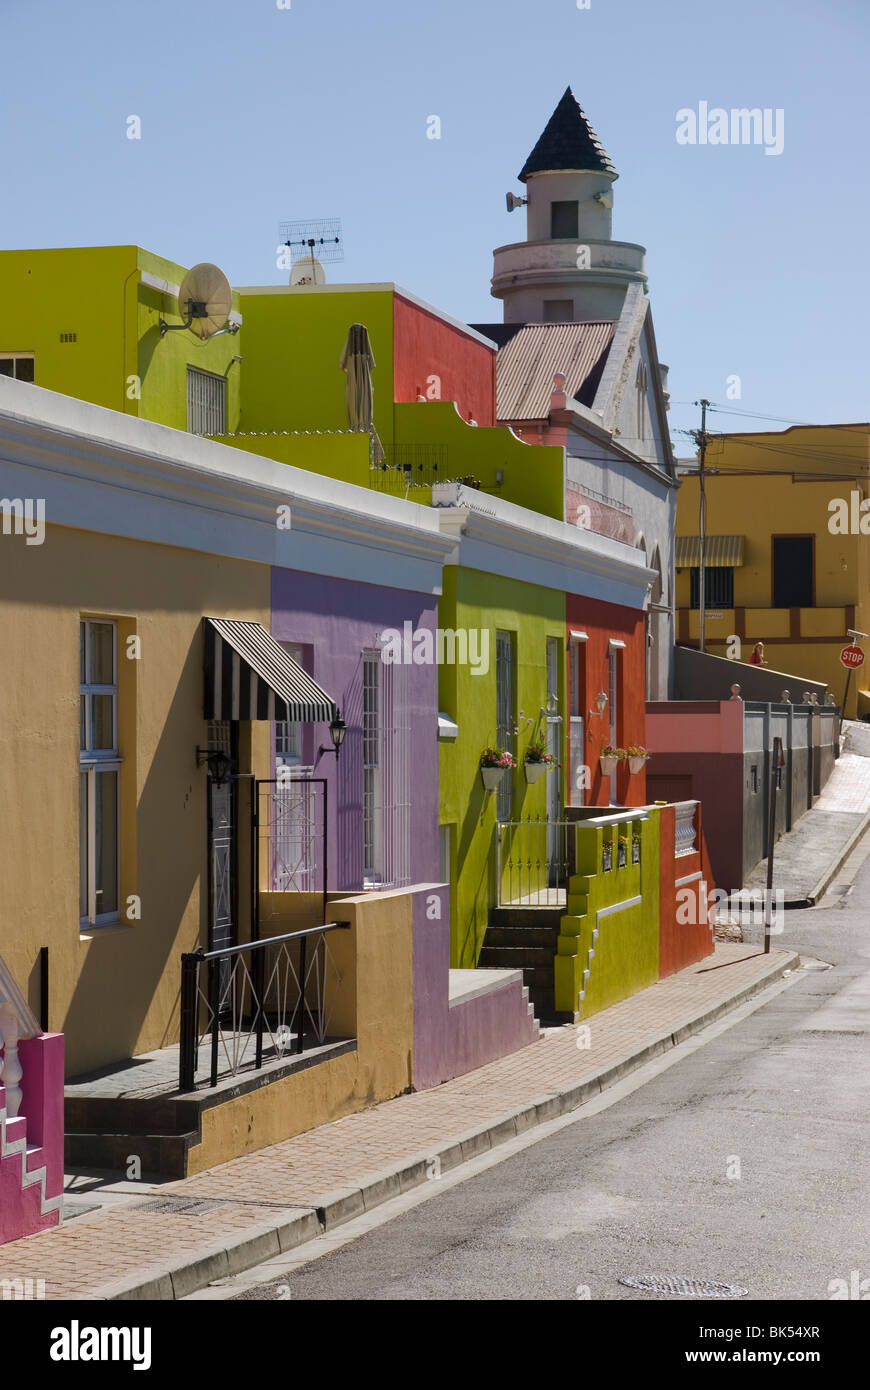 Colourful houses in a street in Bo-Kaap, Cape Town, South Africa - Stock Image